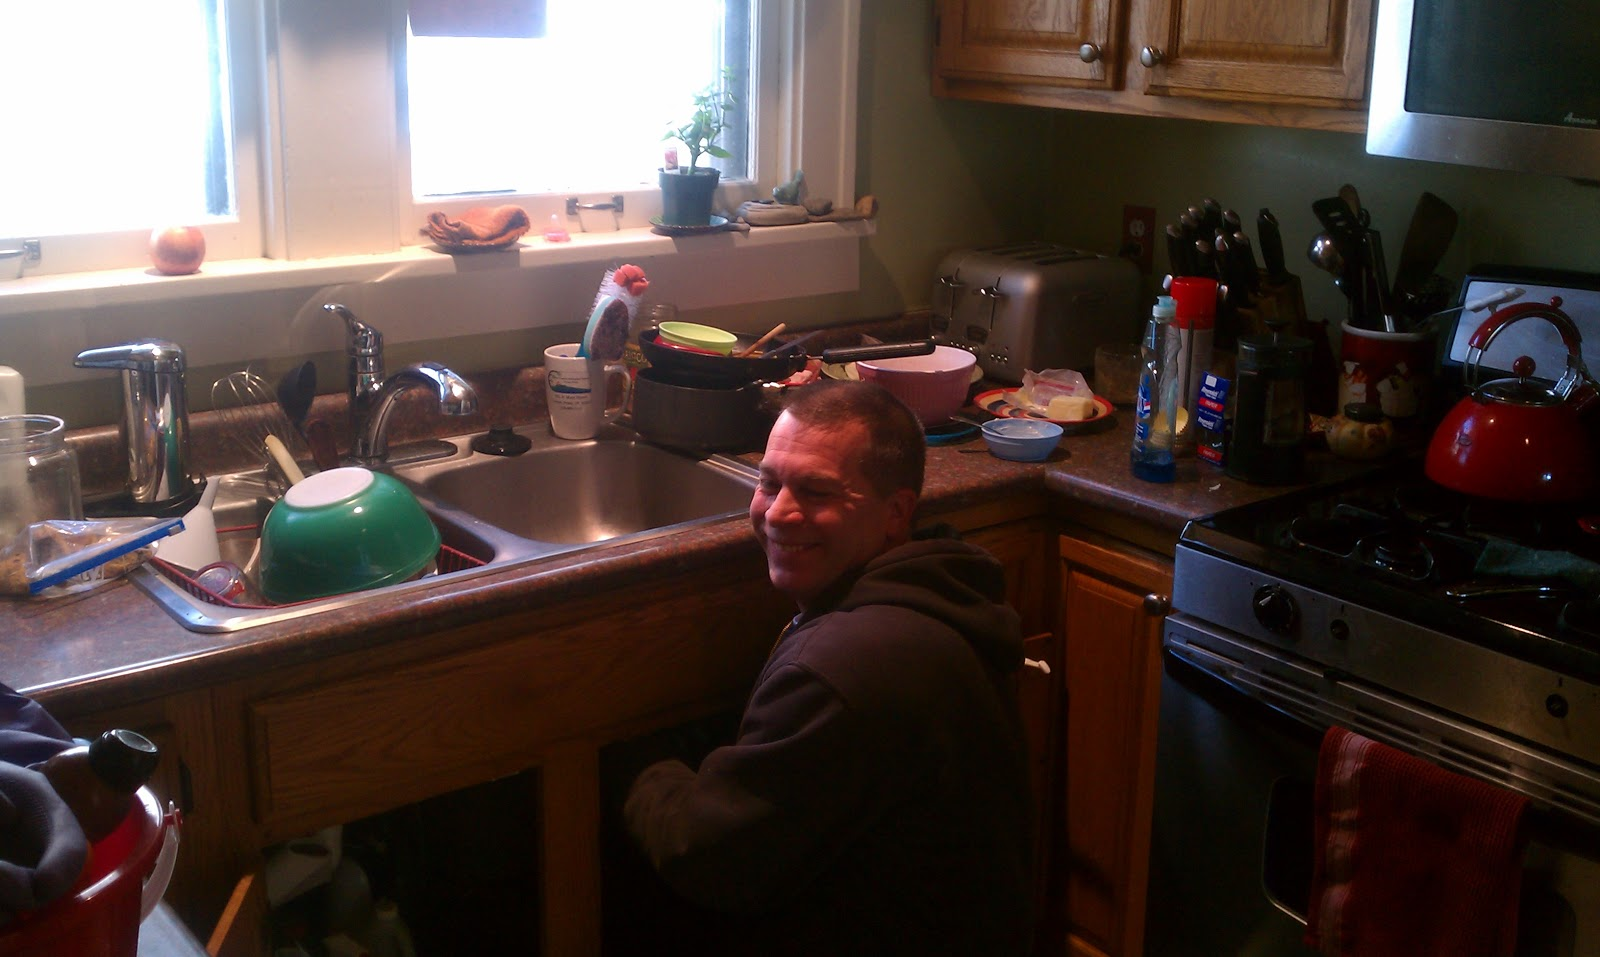 Live your love out loud remodeling your old home Kitchen remodeling valparaiso indiana